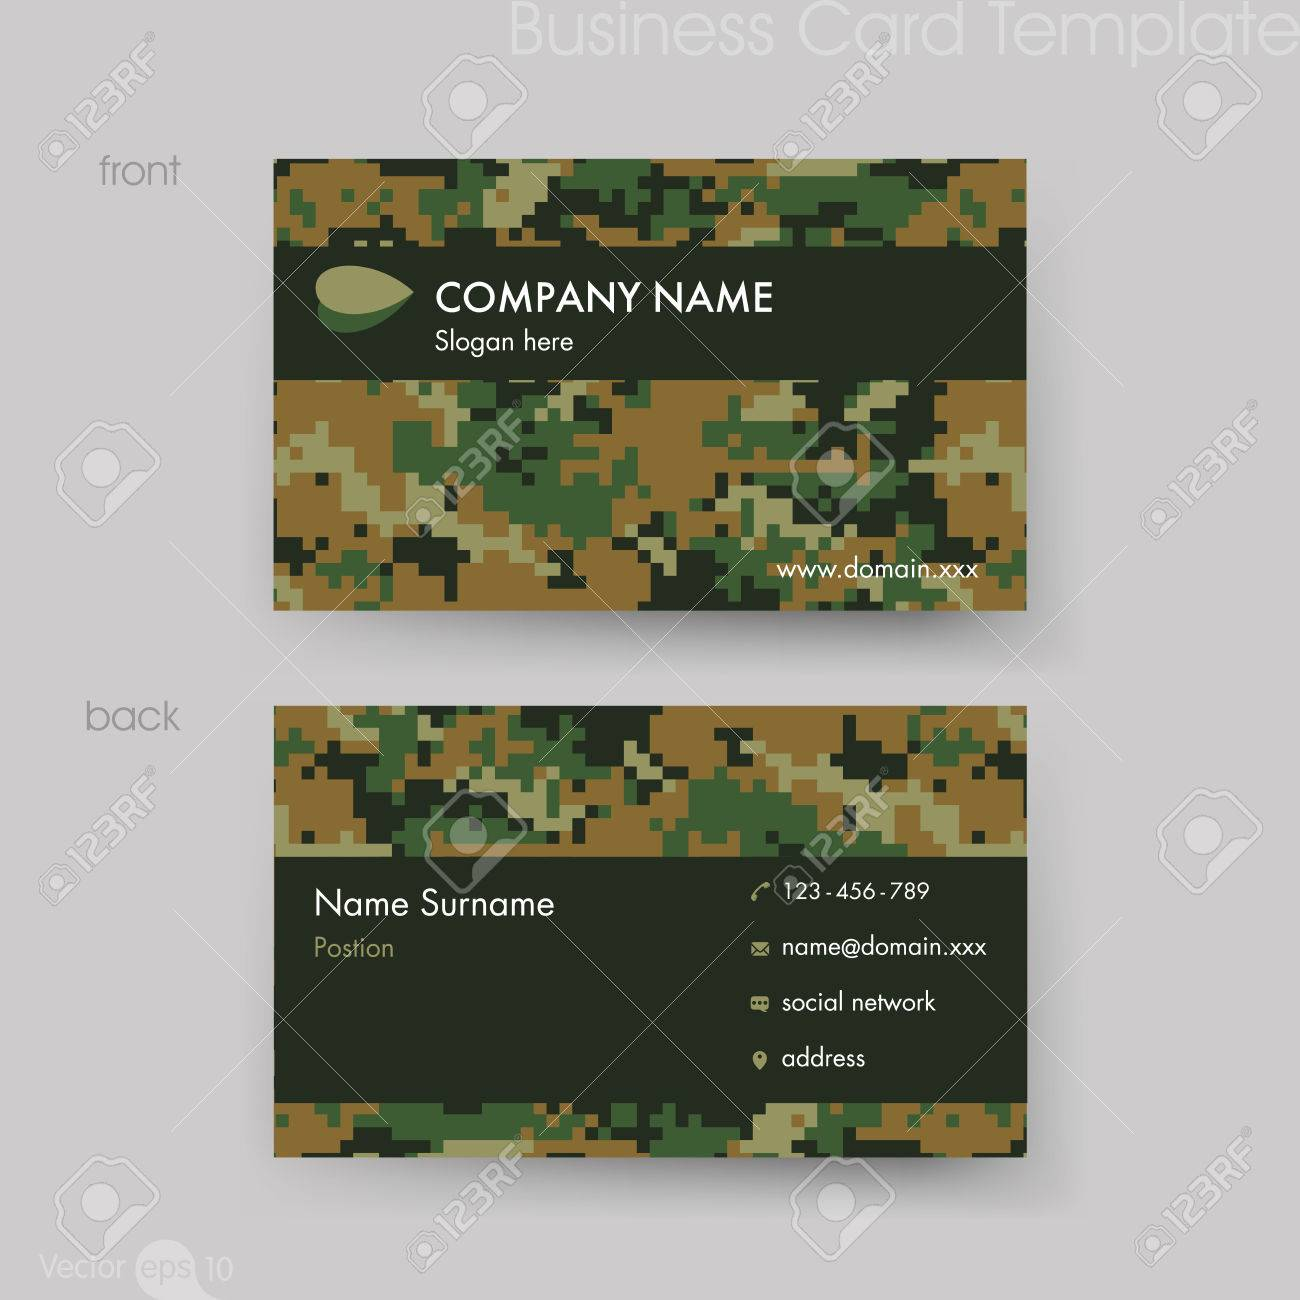 Camouflage pattern business card template royalty free cliparts camouflage pattern business card template stock vector 64659494 colourmoves